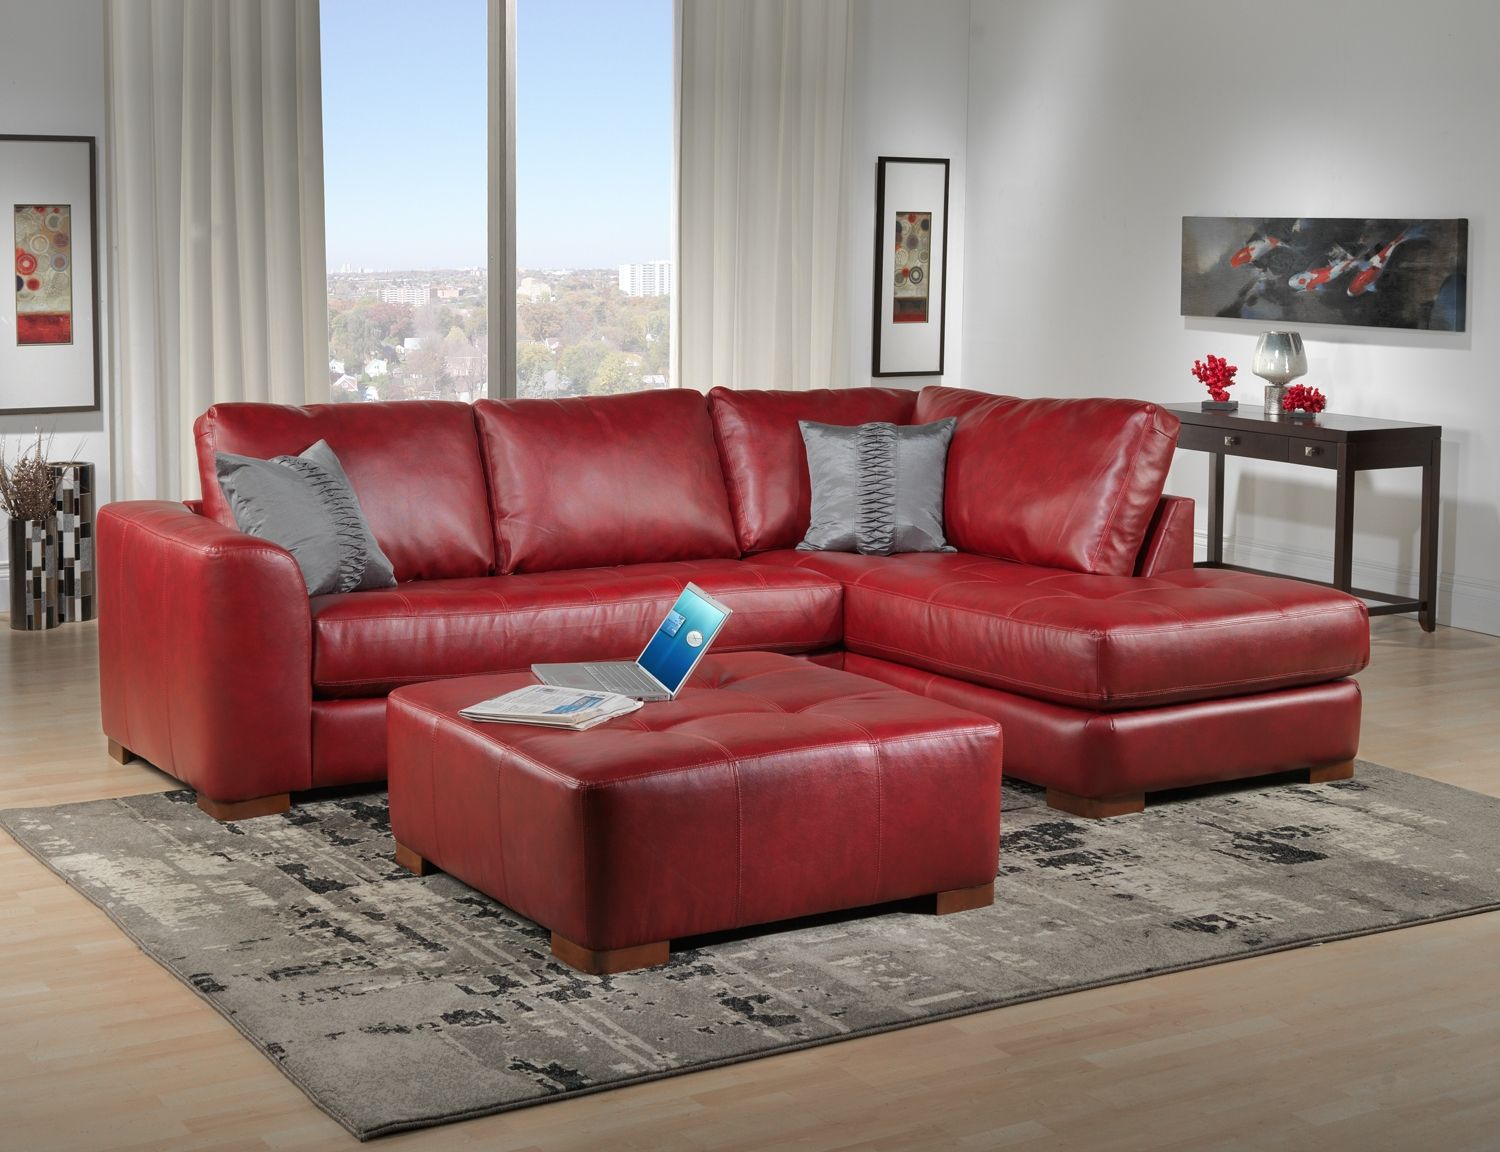 I Want A Red Leather Couch Red Leather Sofa Living Room Red